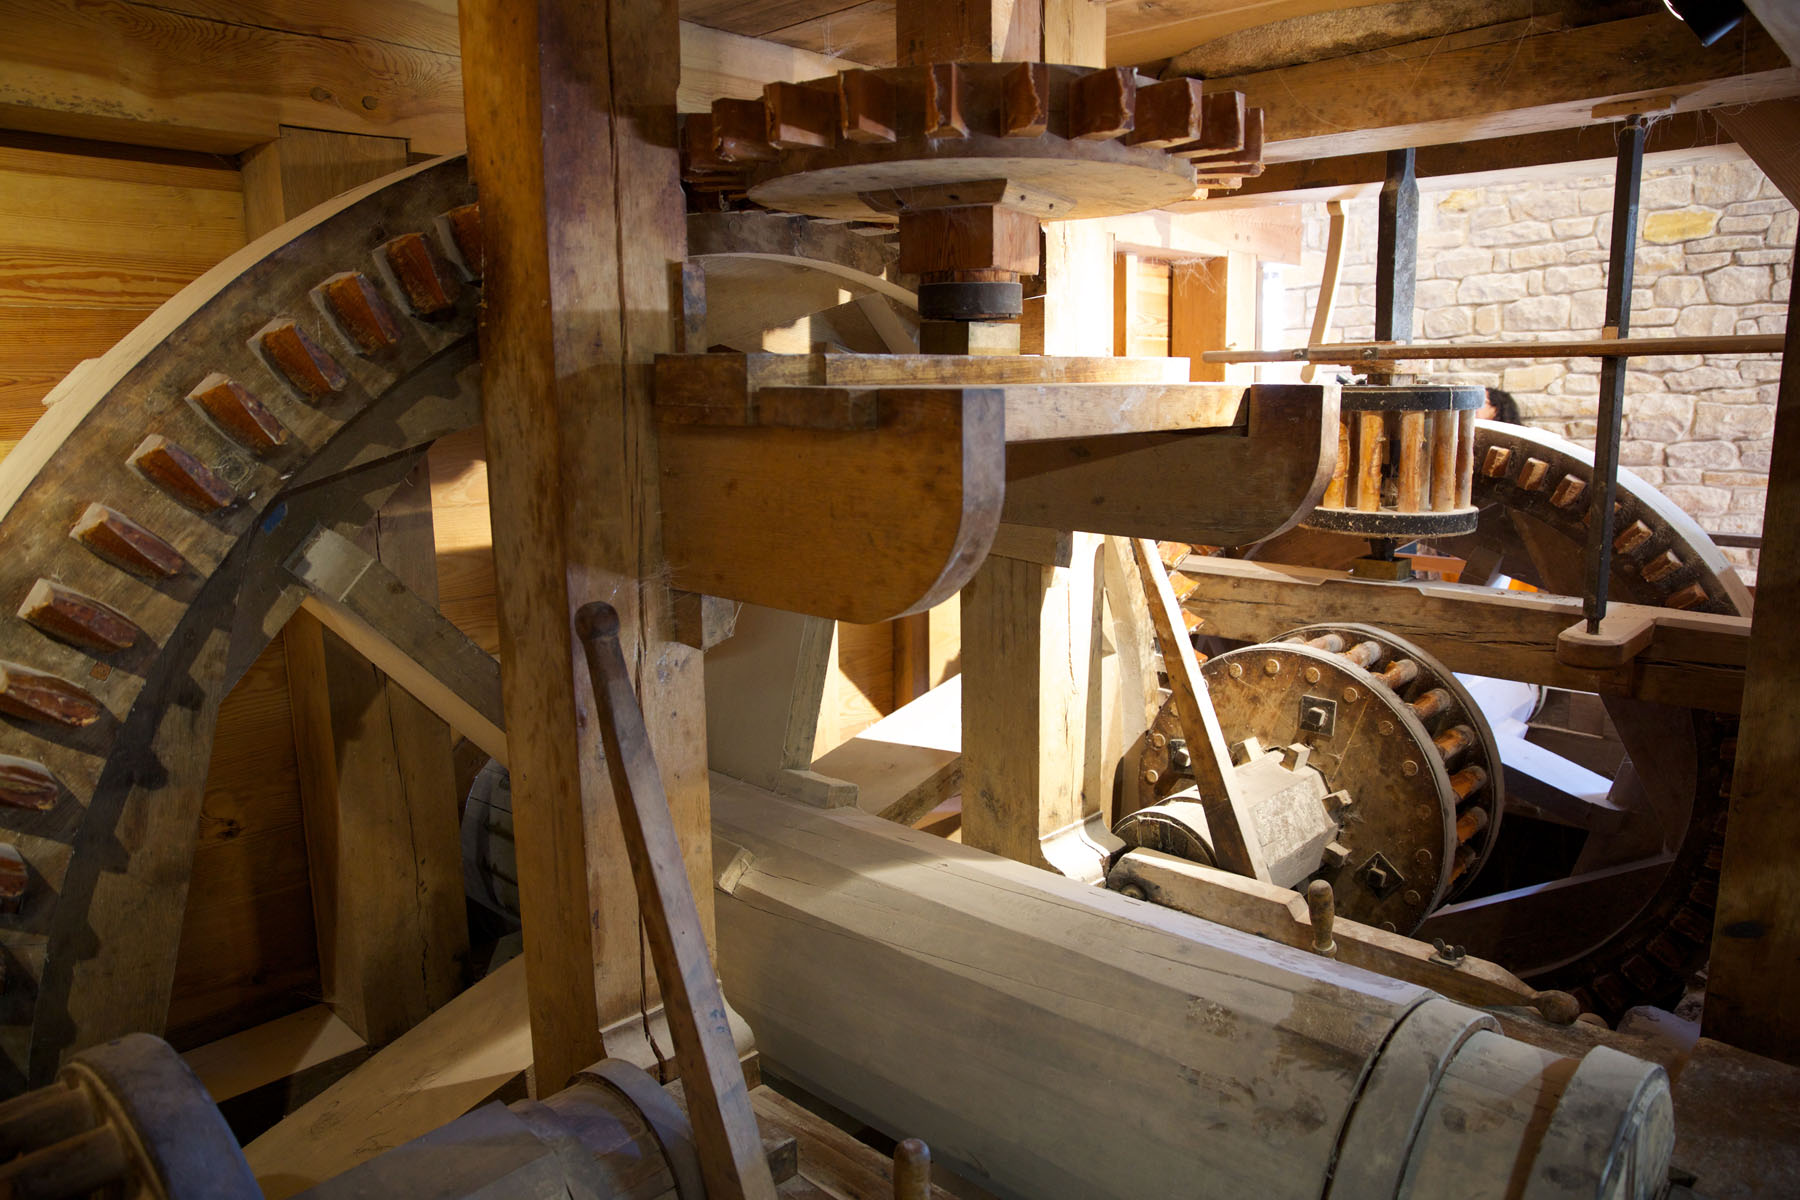 Explore the working gristmill and distillery, reconstructed on Washington's original sites